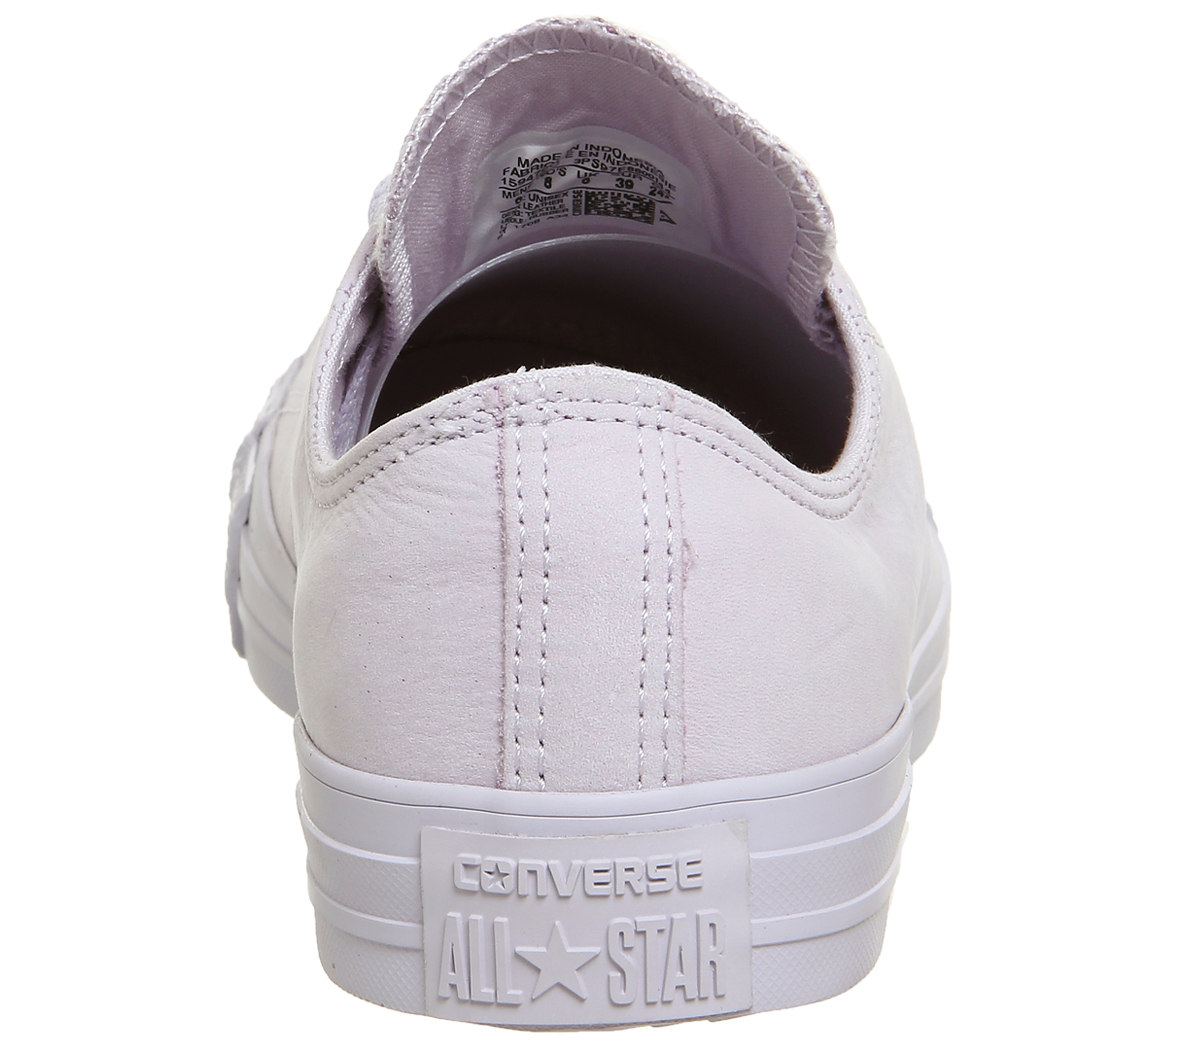 587b405b4663 Womens Converse All Star Low Leather BARELY FUCHSIA ROSE GOLD EXCLUSIVE  Trainers